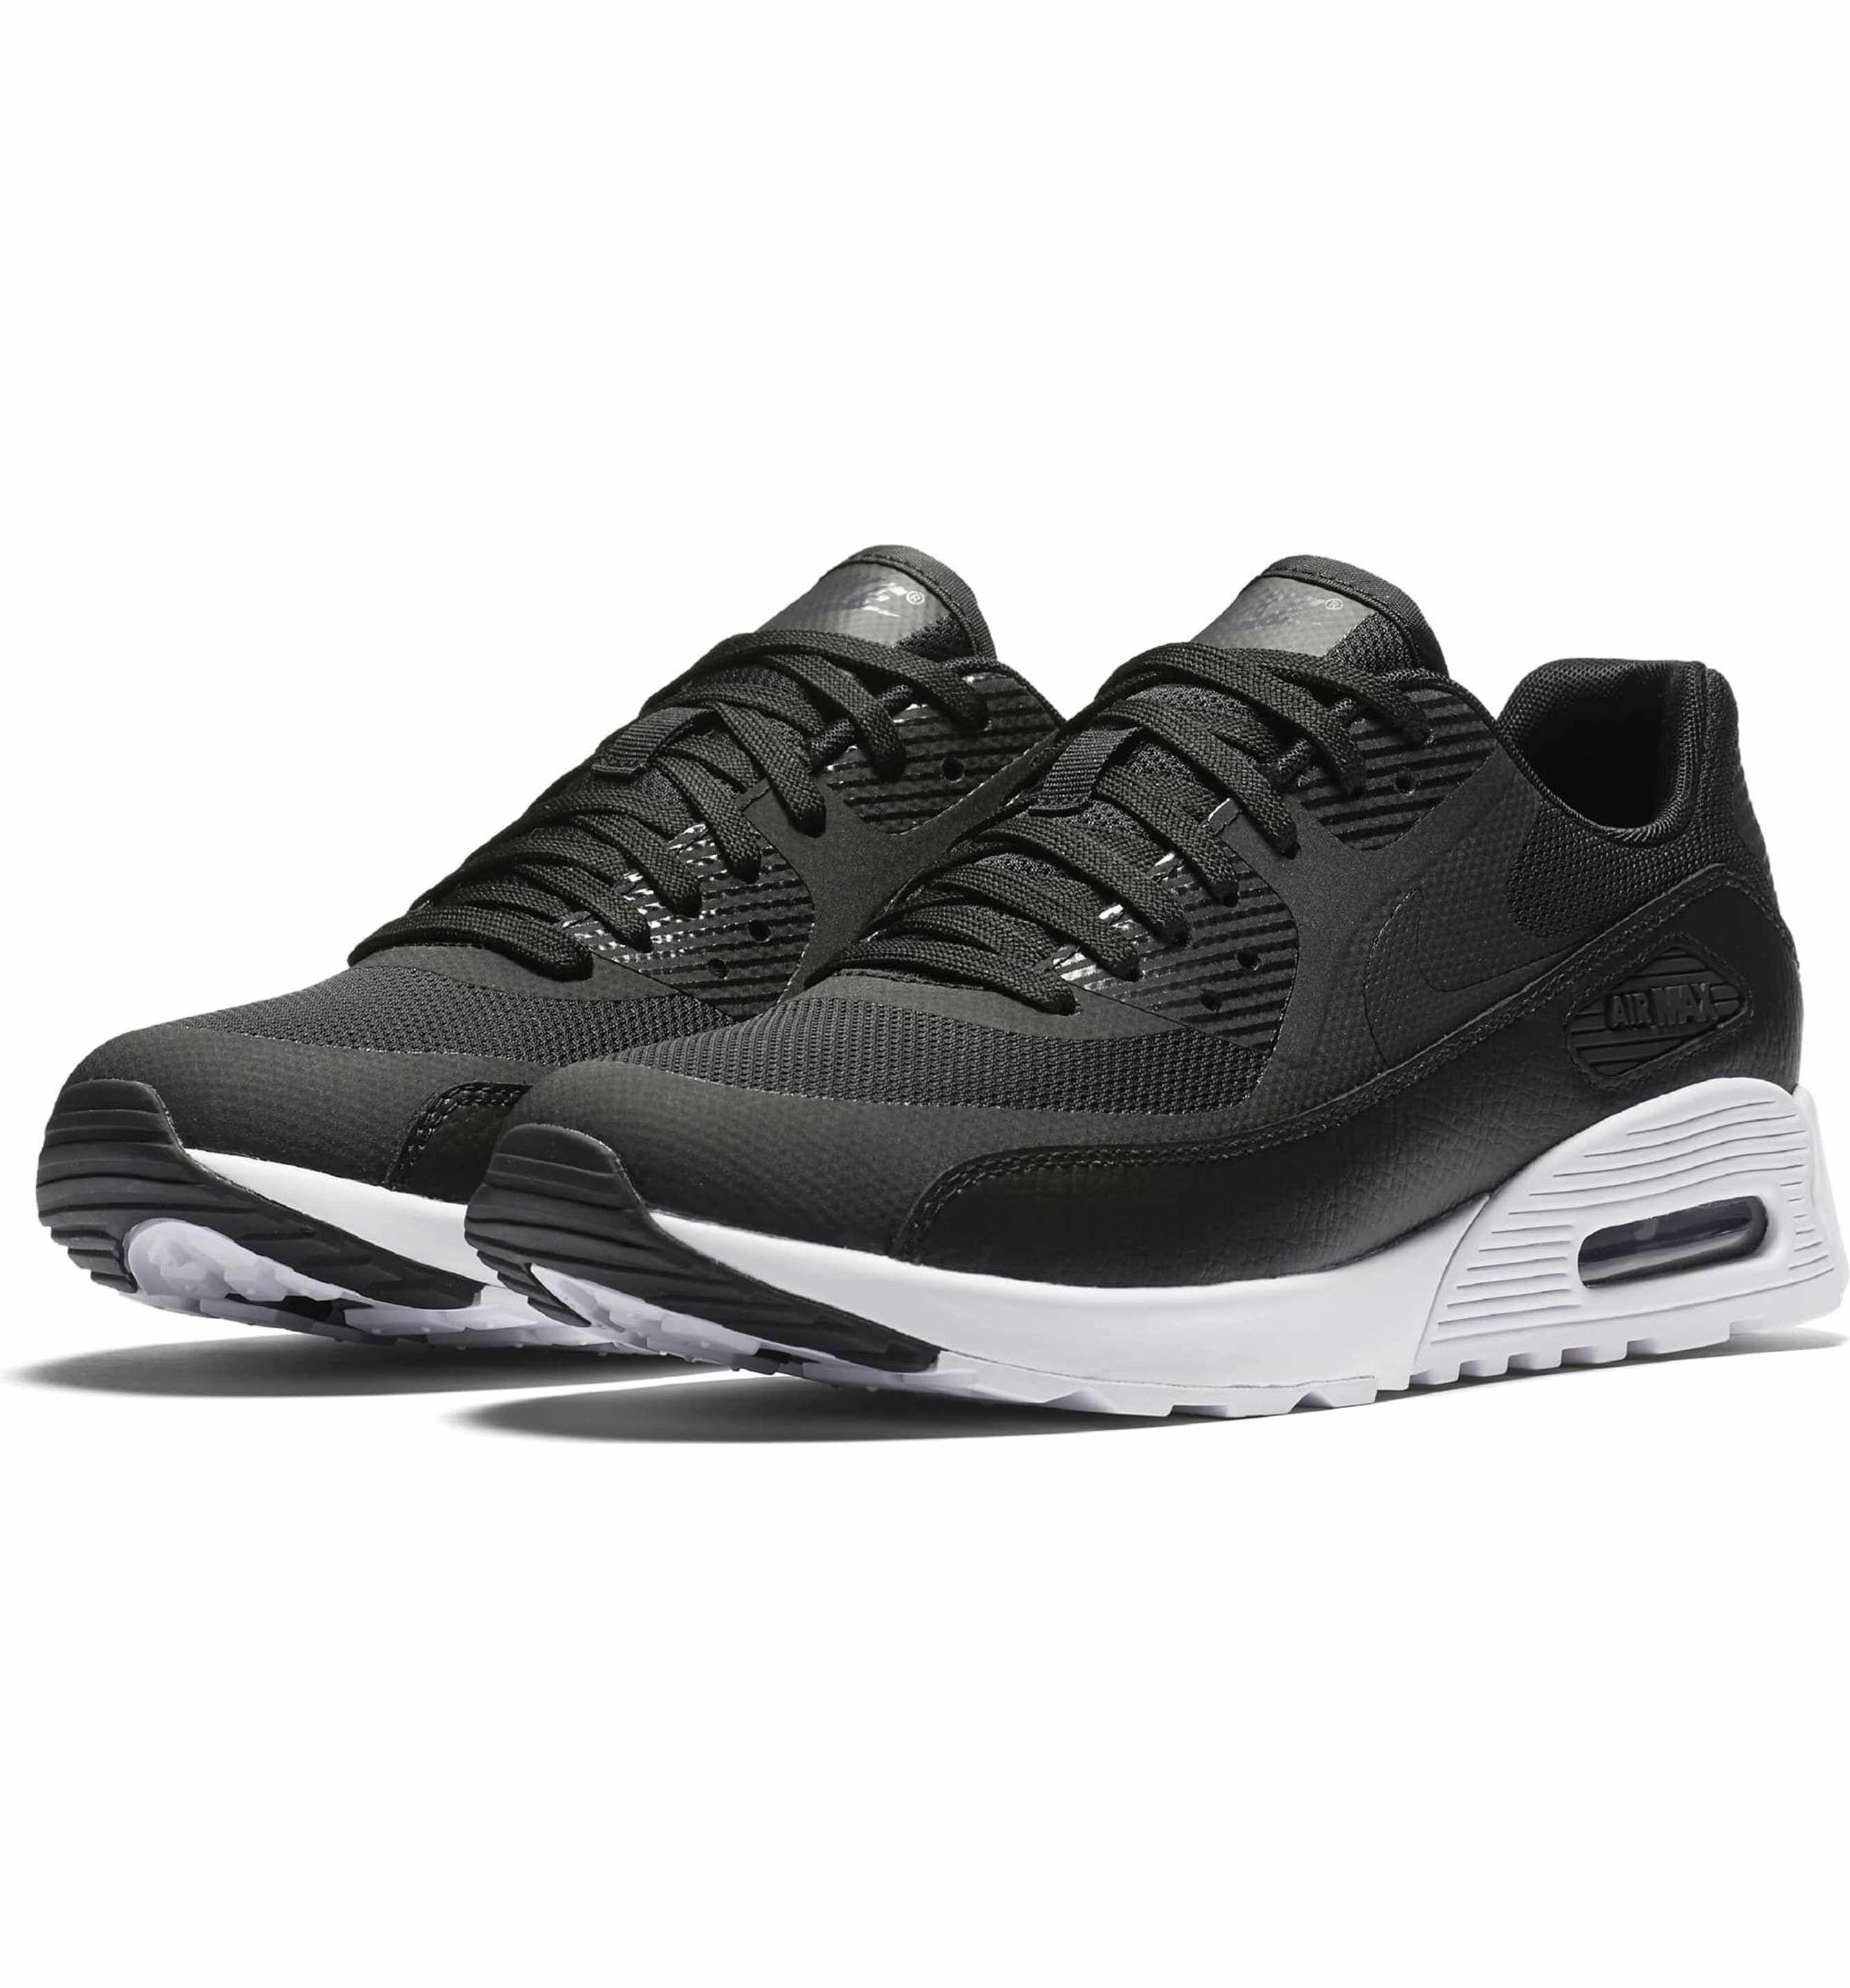 Basket air max more noir pas cher site francais 2967